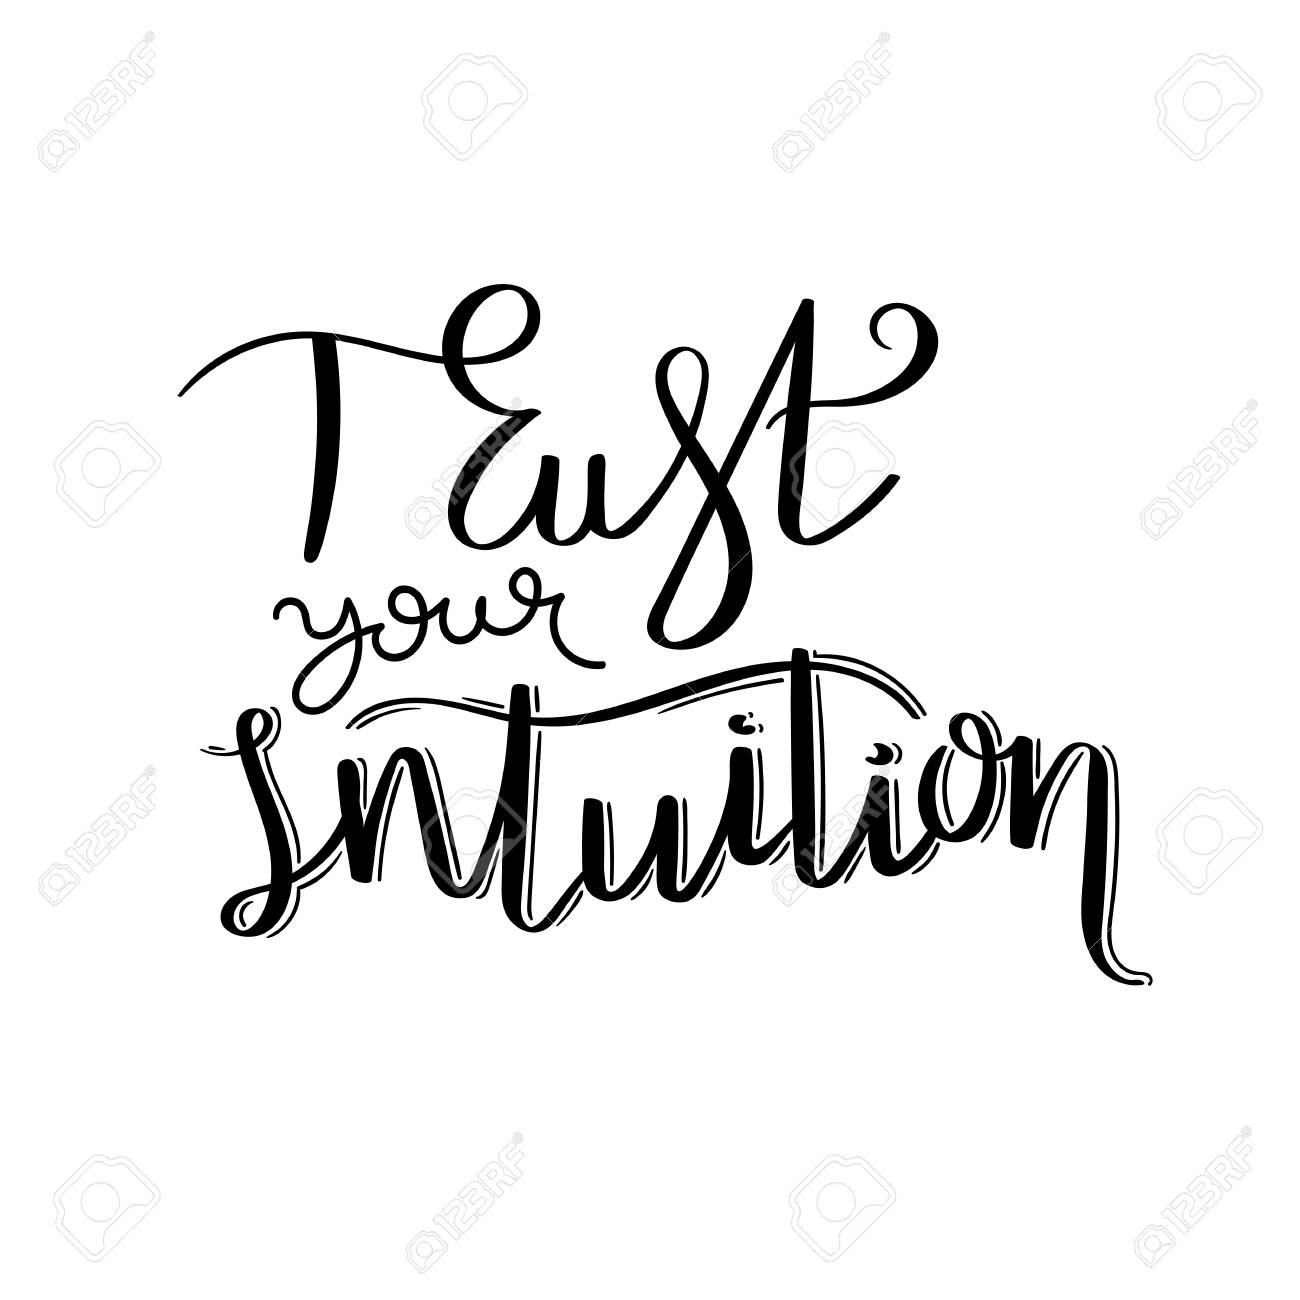 Image result for trust your intuition clipart